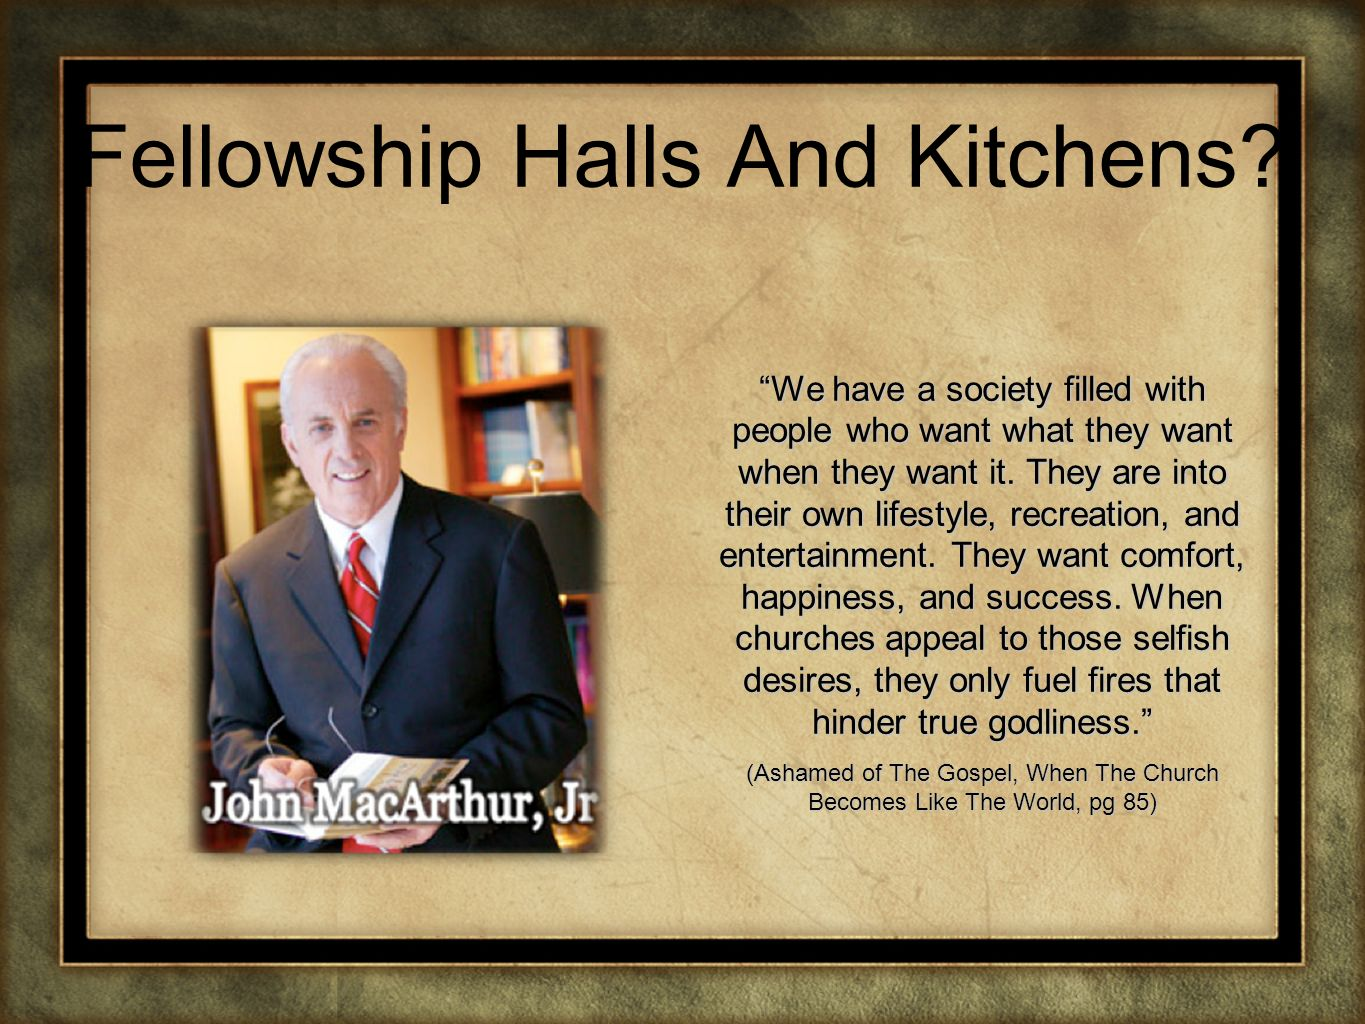 Fellowship Halls And Kitchens? We have a society filled with people who want what they want when they want it. They are into their own lifestyle, recr